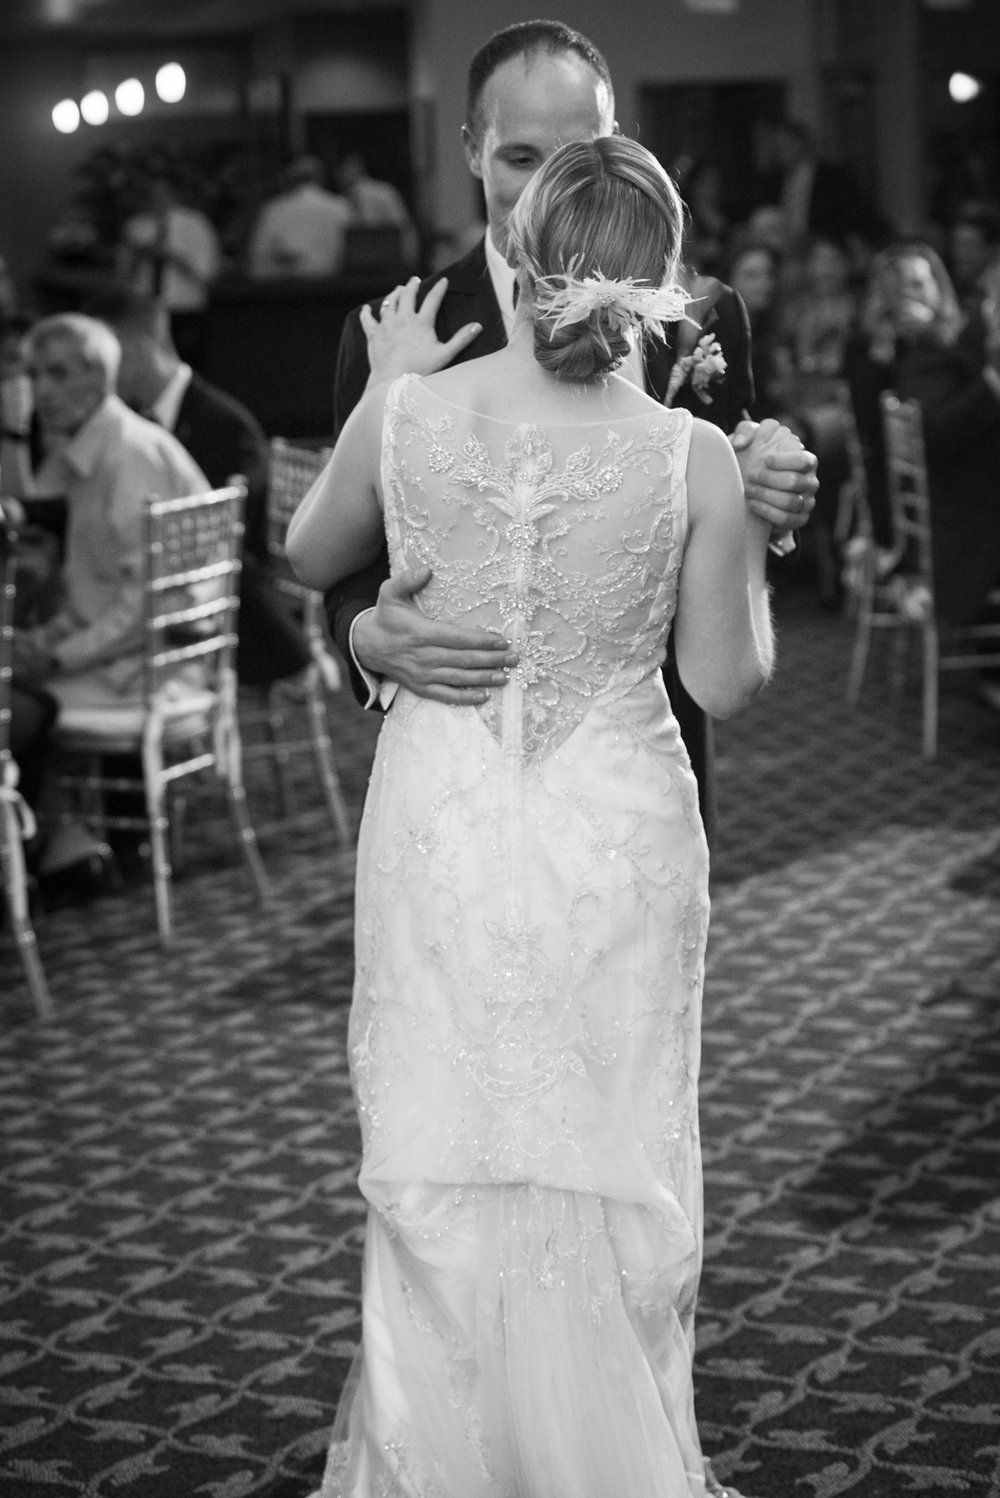 first-dance-Scranton-clarks-summit-wedding-glen-oaks-contry-club-wedding-photographer-steven-serge-2.jpg